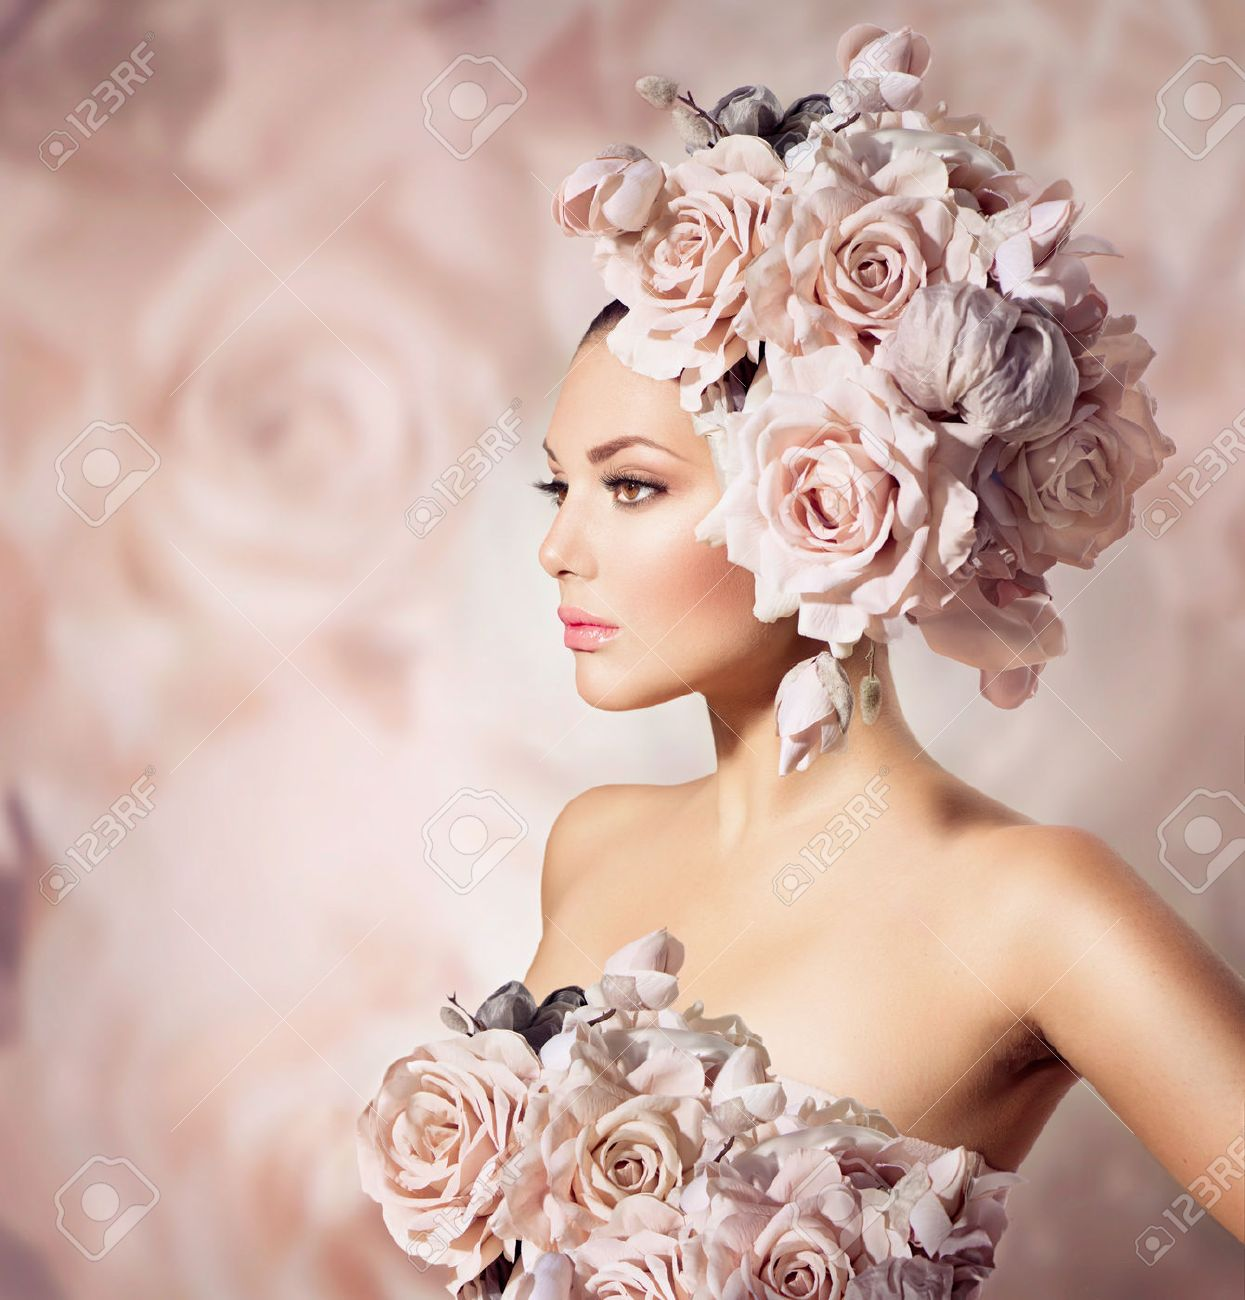 Fashion Beauty Model Girl with Flowers Hair  Bride Stock Photo - 22559302